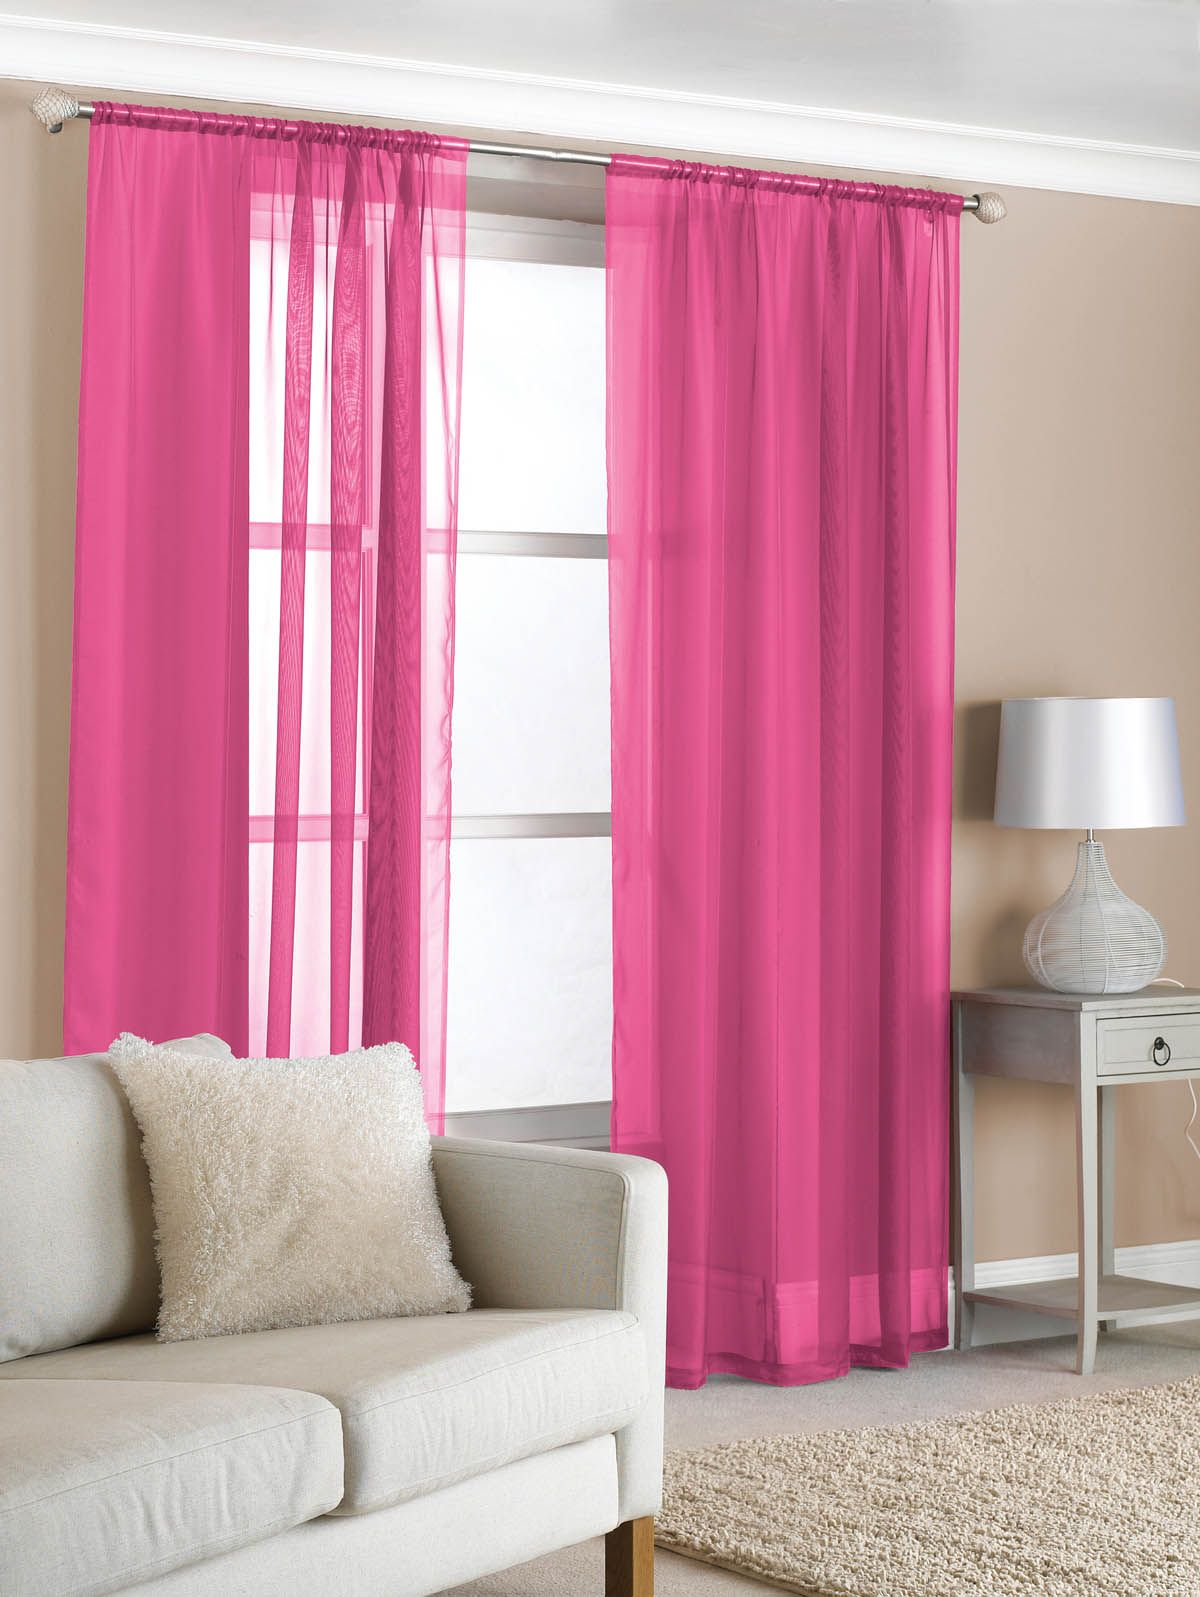 Pink bedroom curtain design - Sweet Pink Bedroom Curtains For Girls Bedroom Accessories Captivating Pink Bedroom Curtain In Wonderful Bedroom